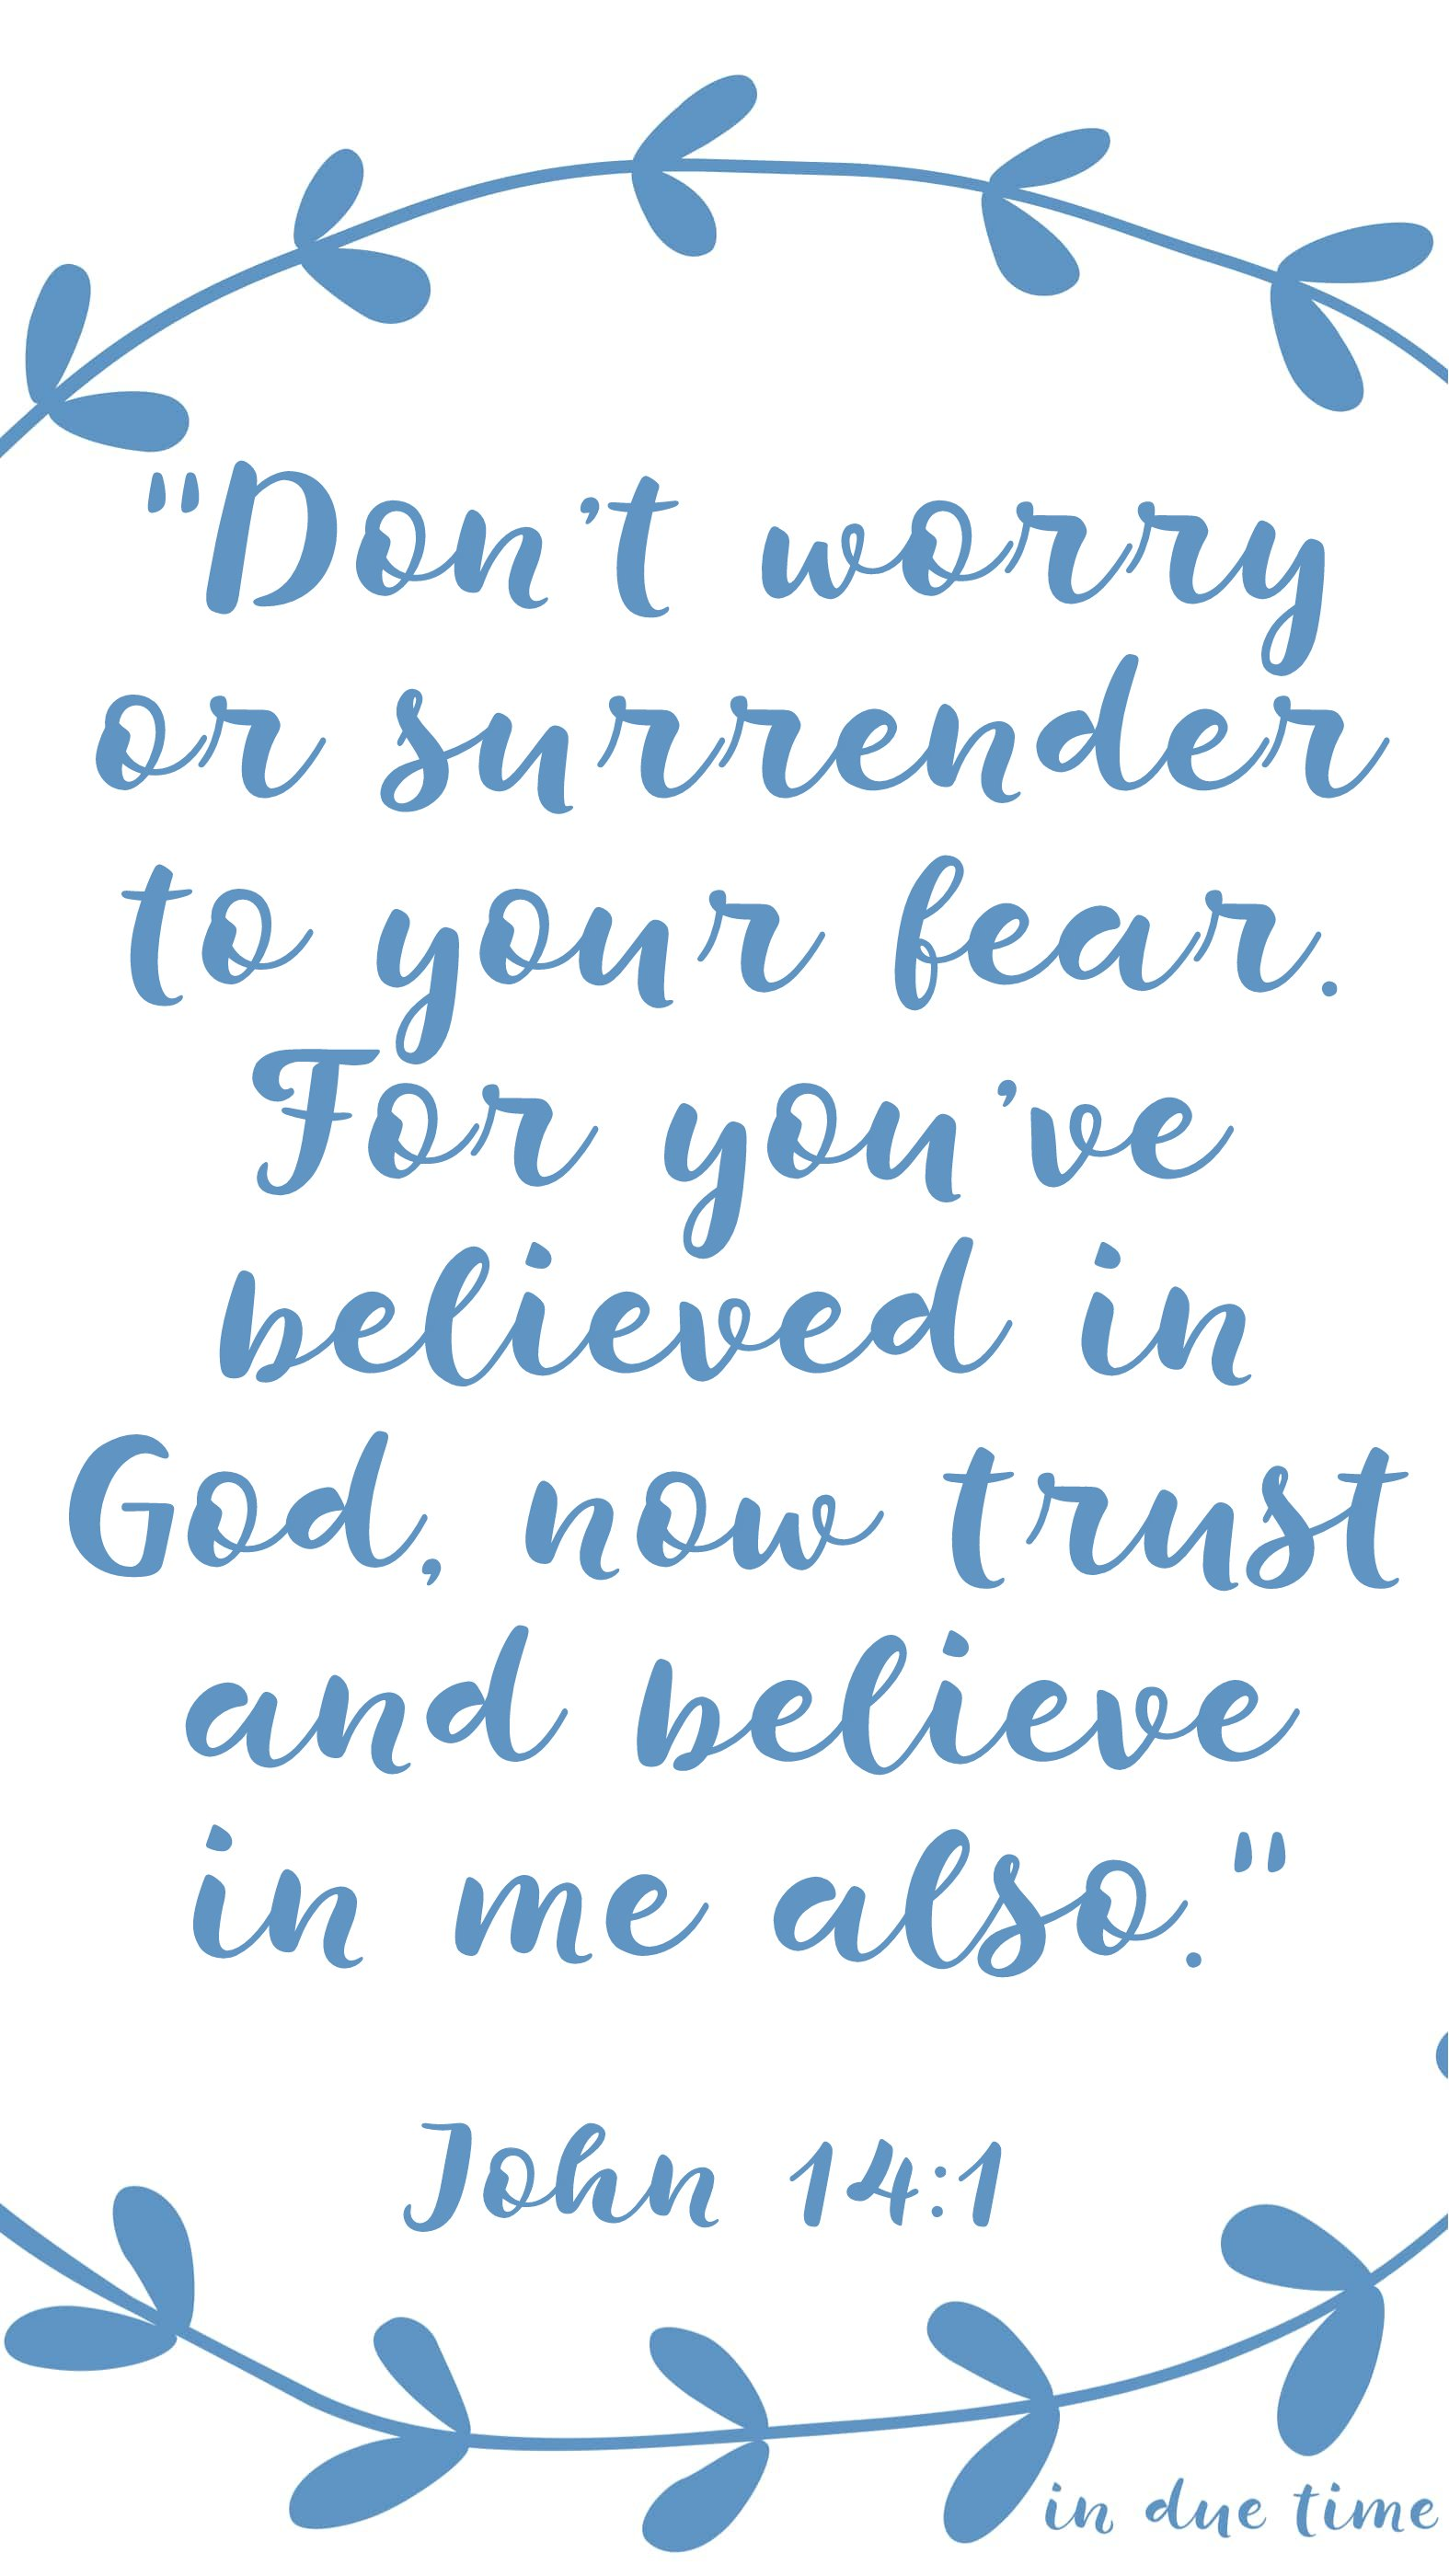 """Don't worry or surrender to your fear.[a] For you've believed in God, now trust and believe in me also."